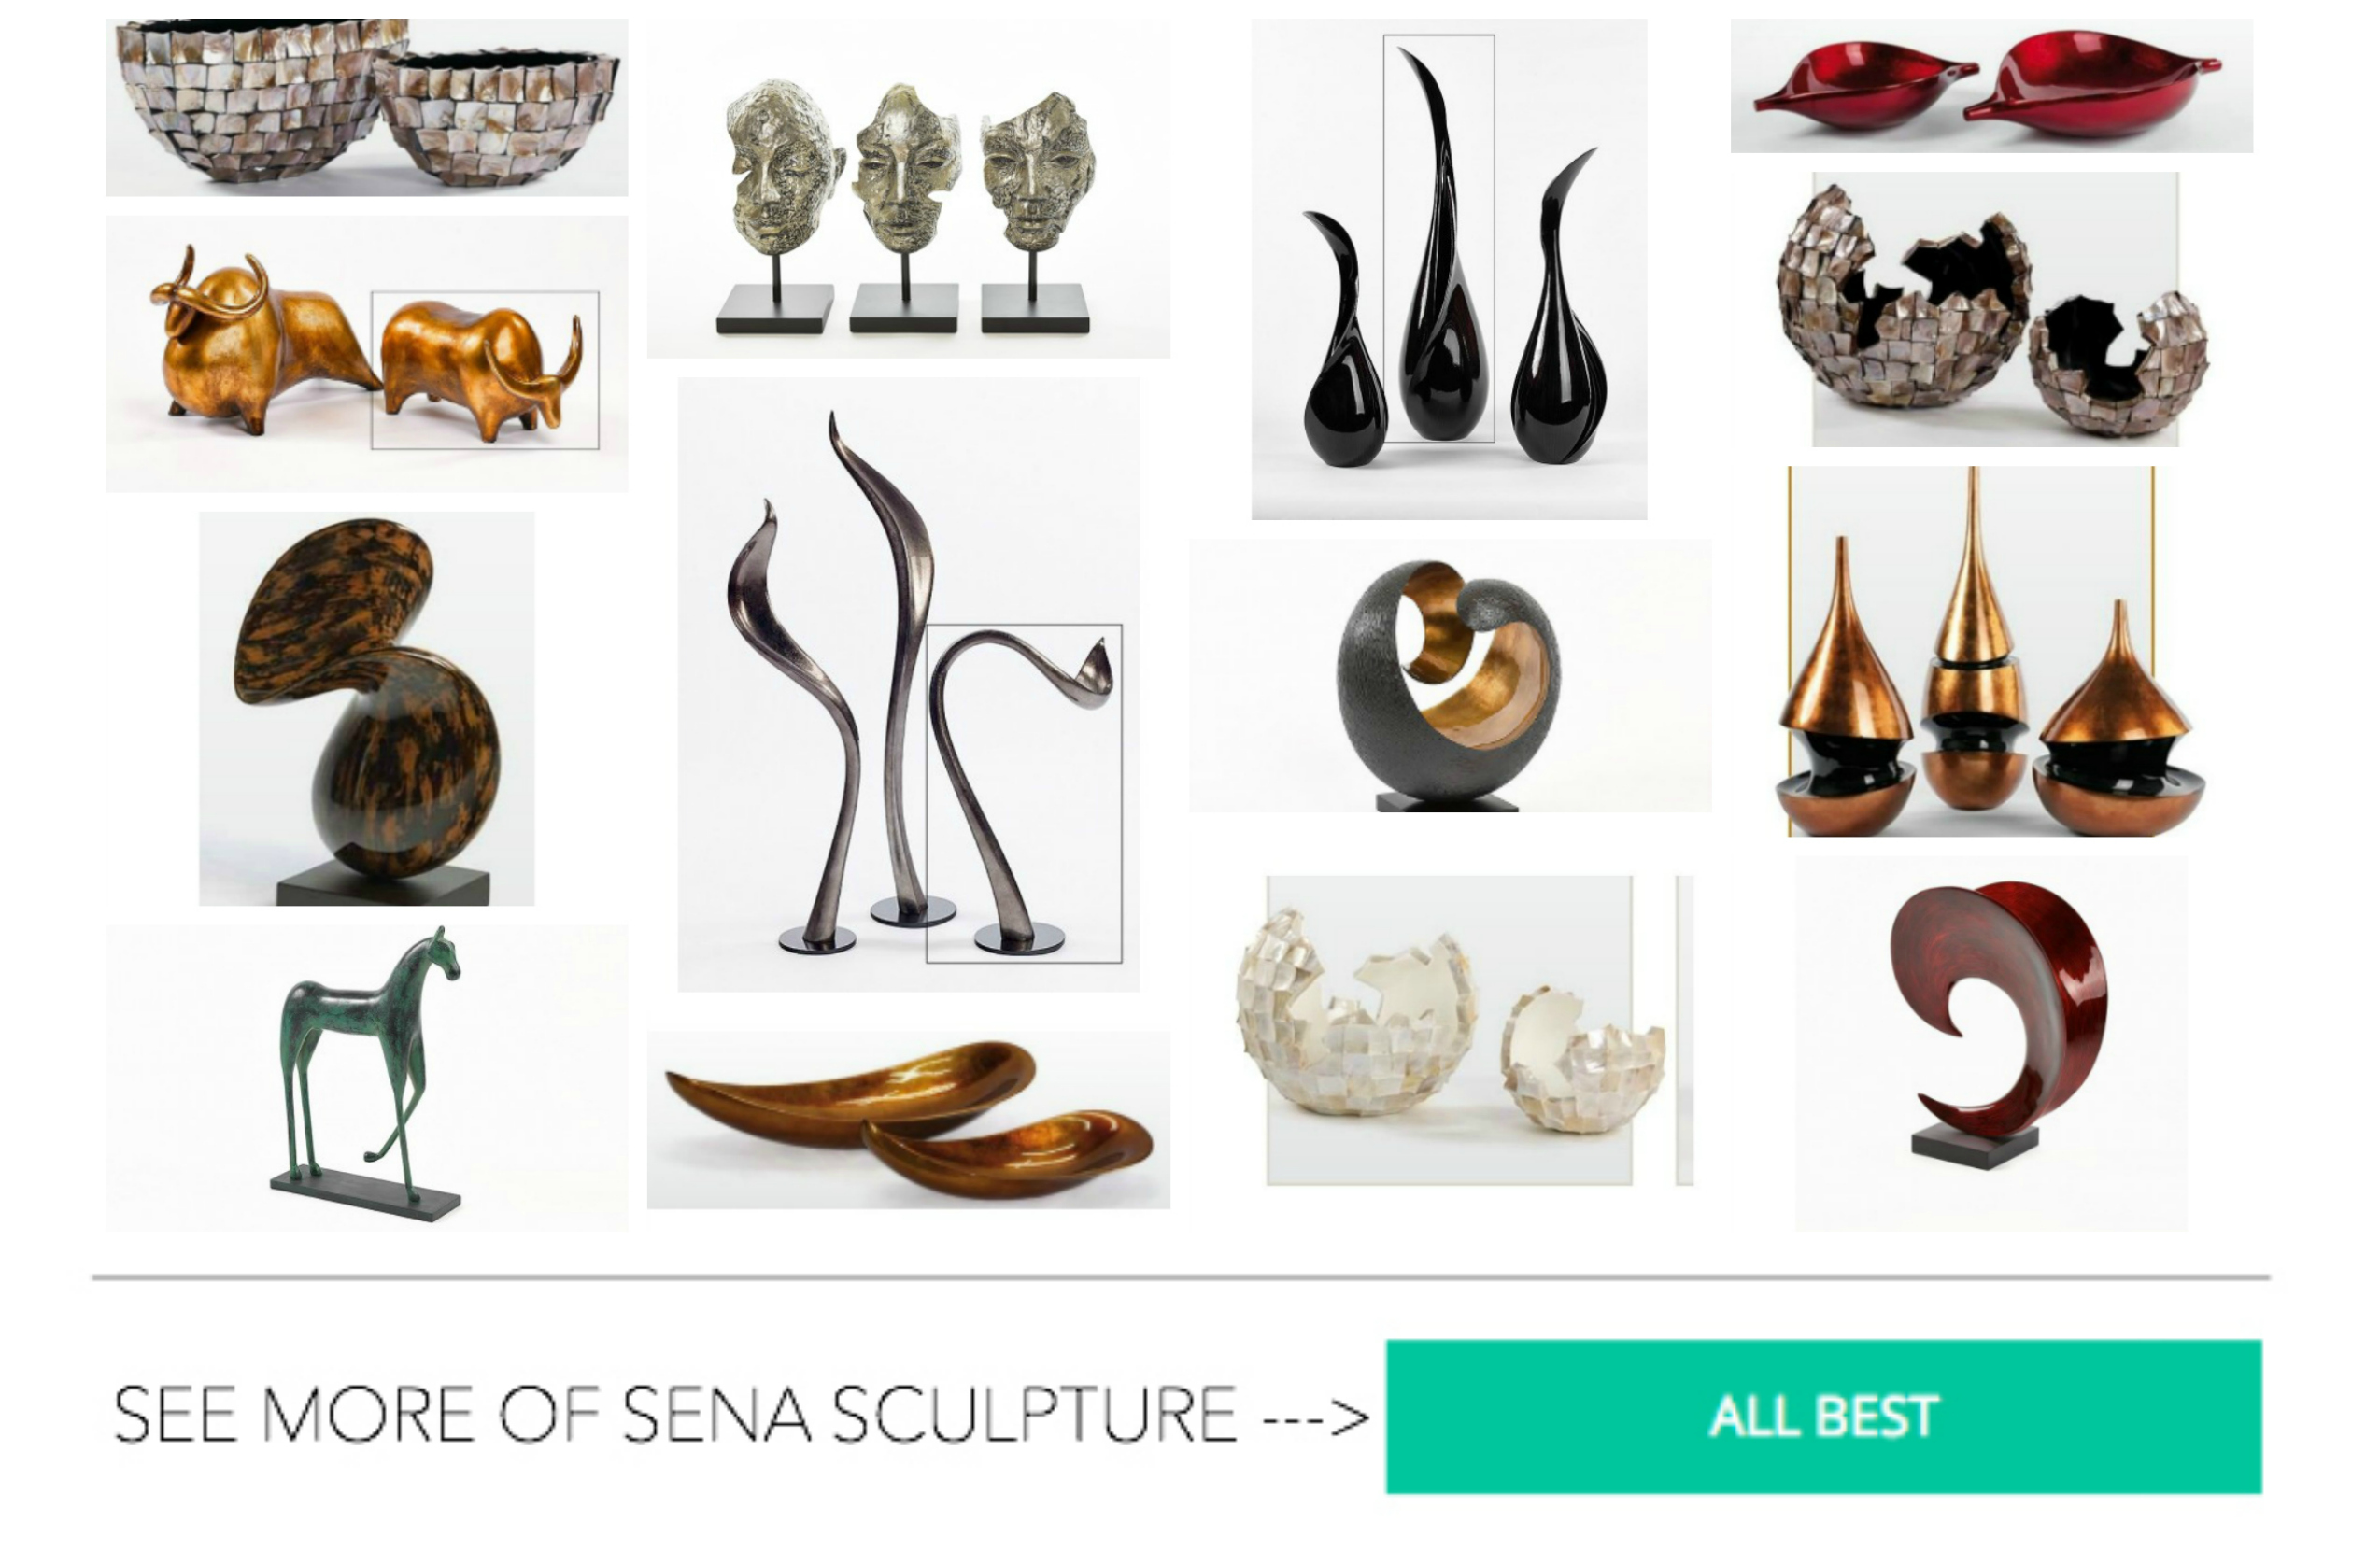 Sculptures and decorative figurines in the arrangement of the apartment. We choose accessories for your home style!